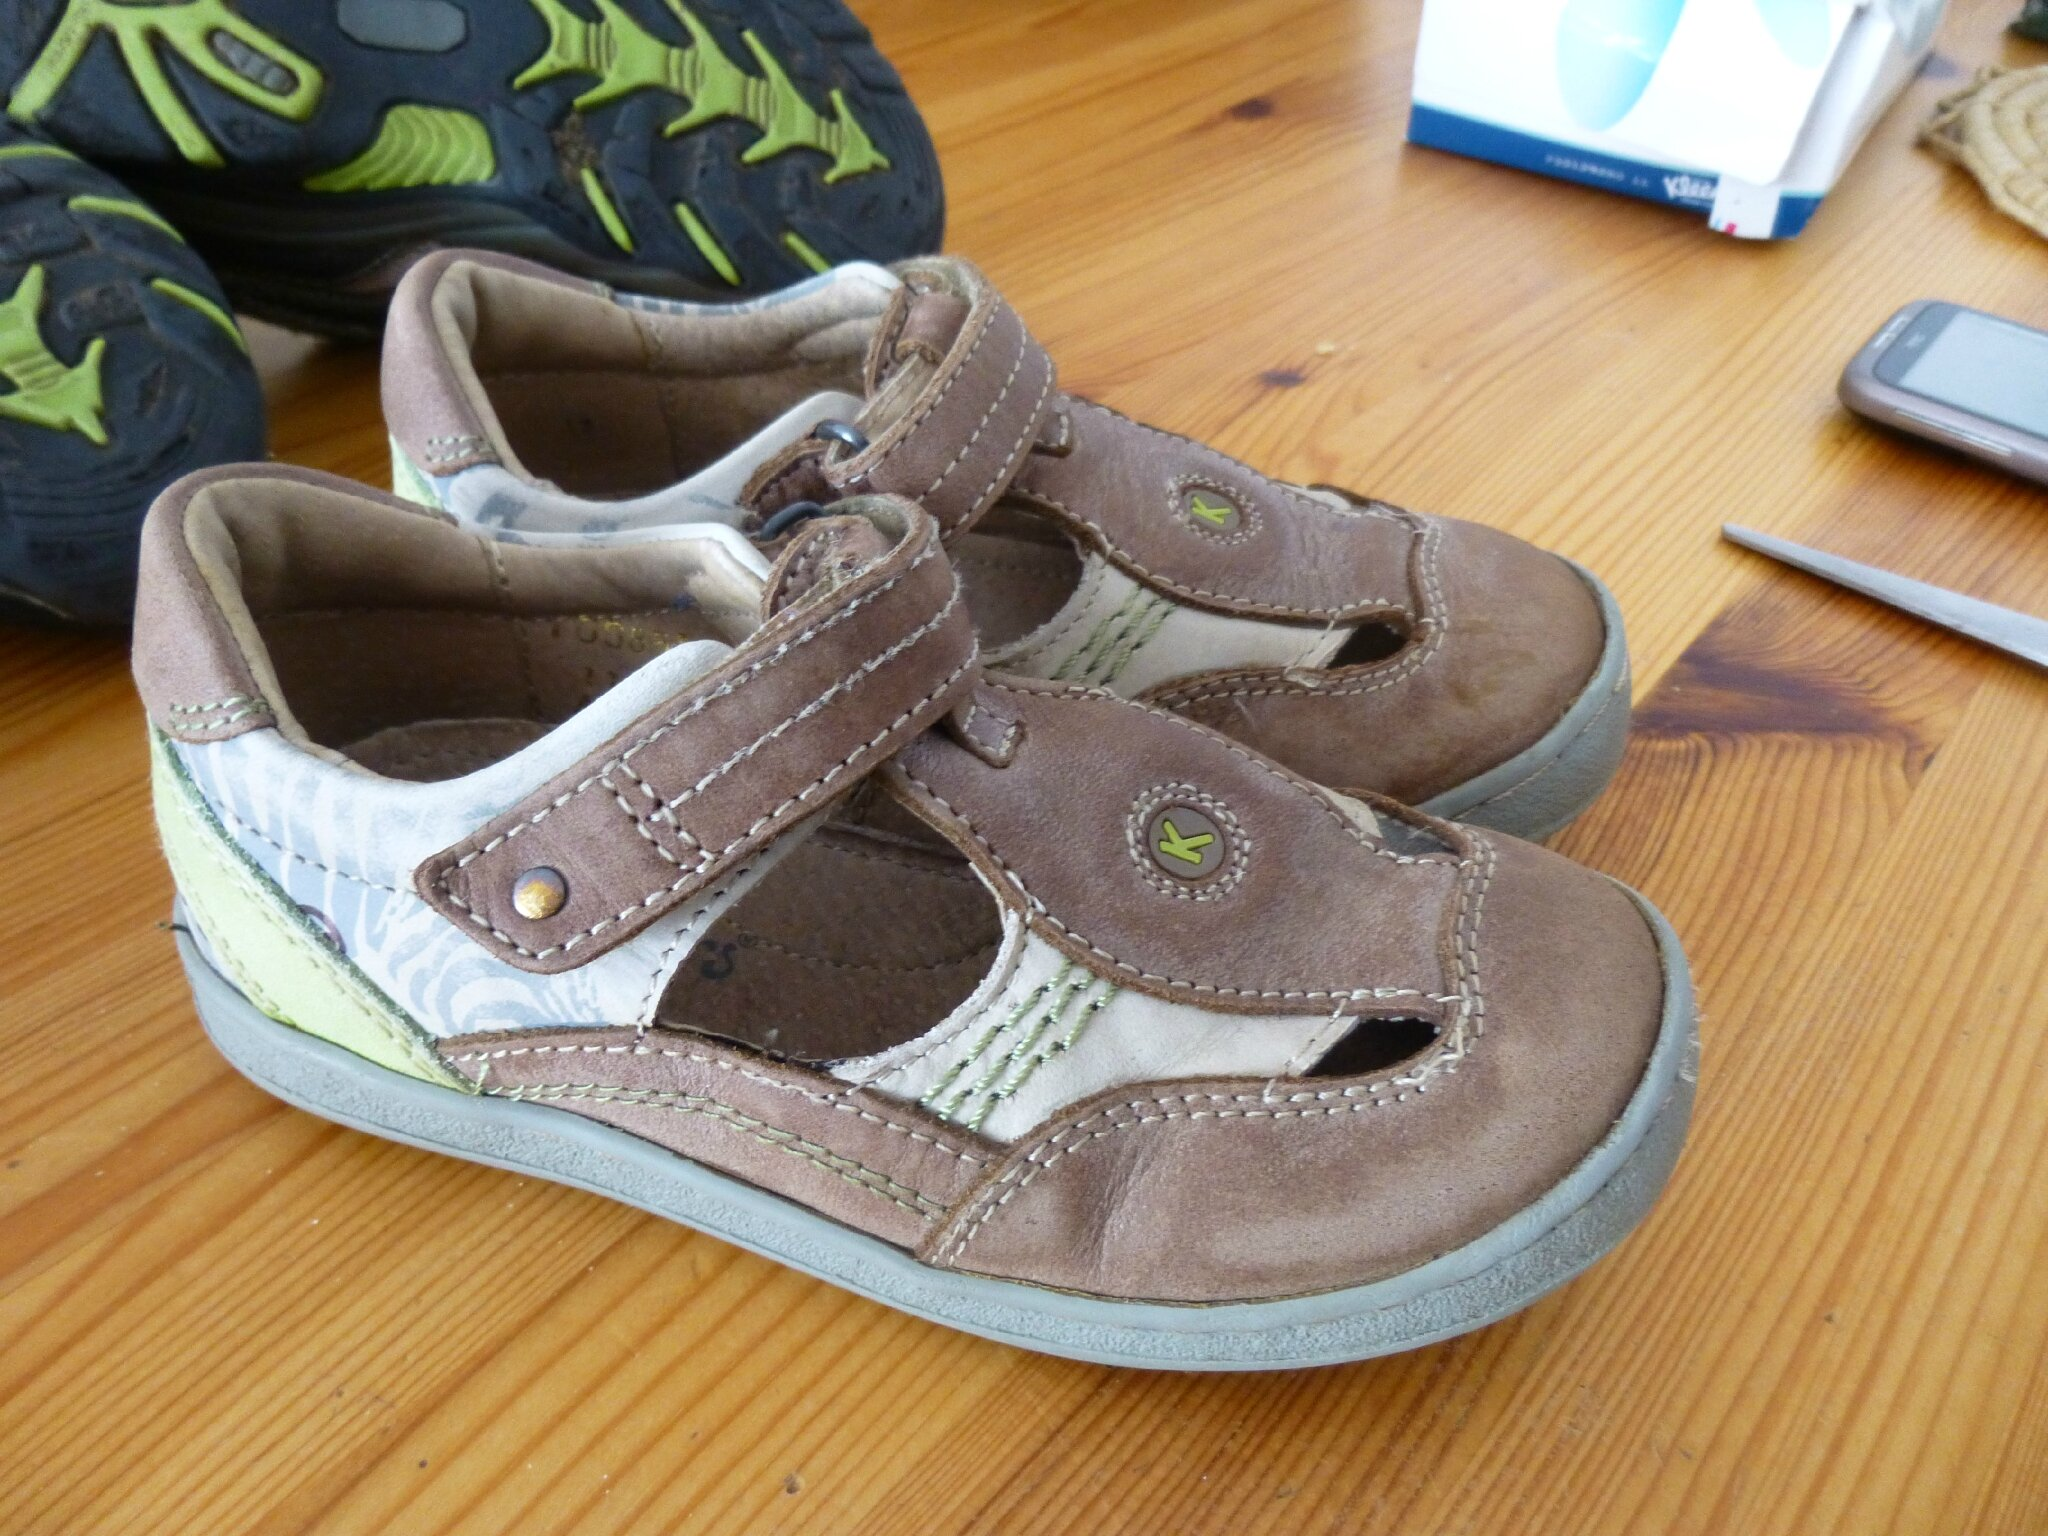 200267a899e3fb pointure 27 kickers mi saison 6 euros P1060971 - Photo de G ...